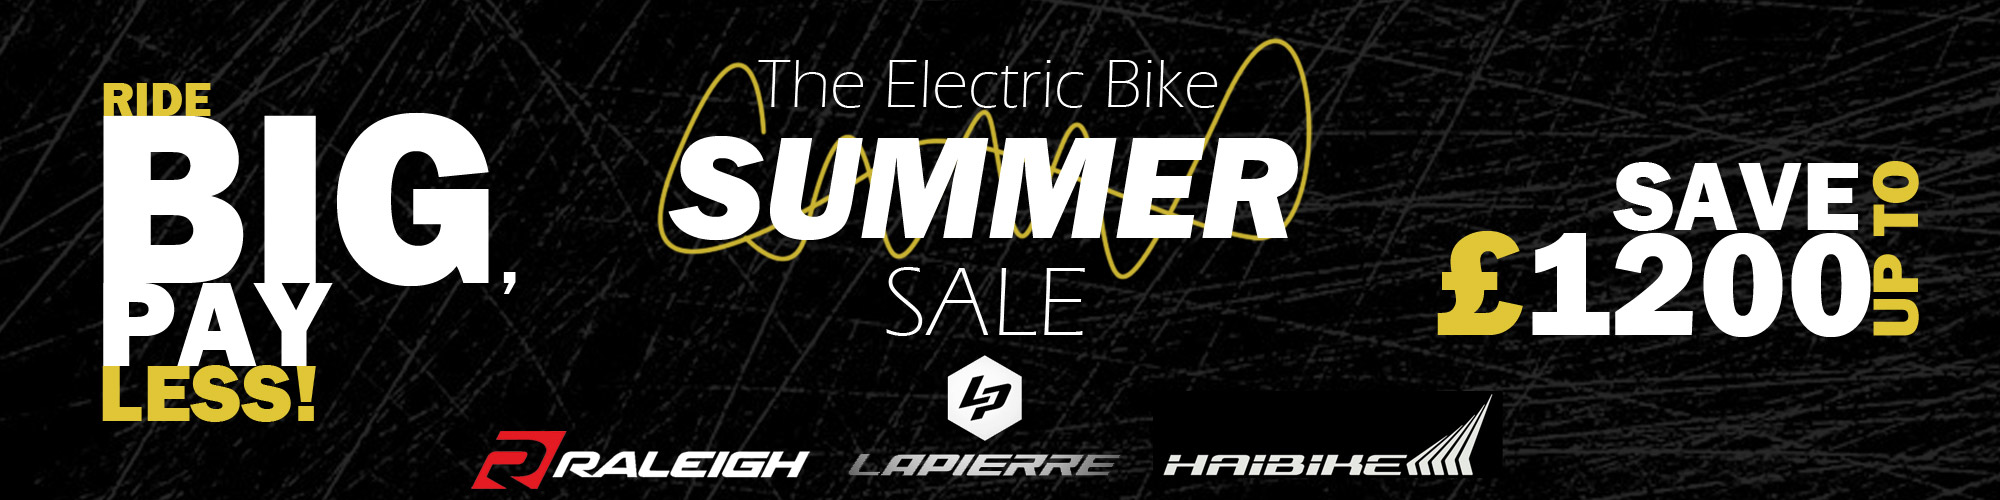 Summer Electric Bike Sale